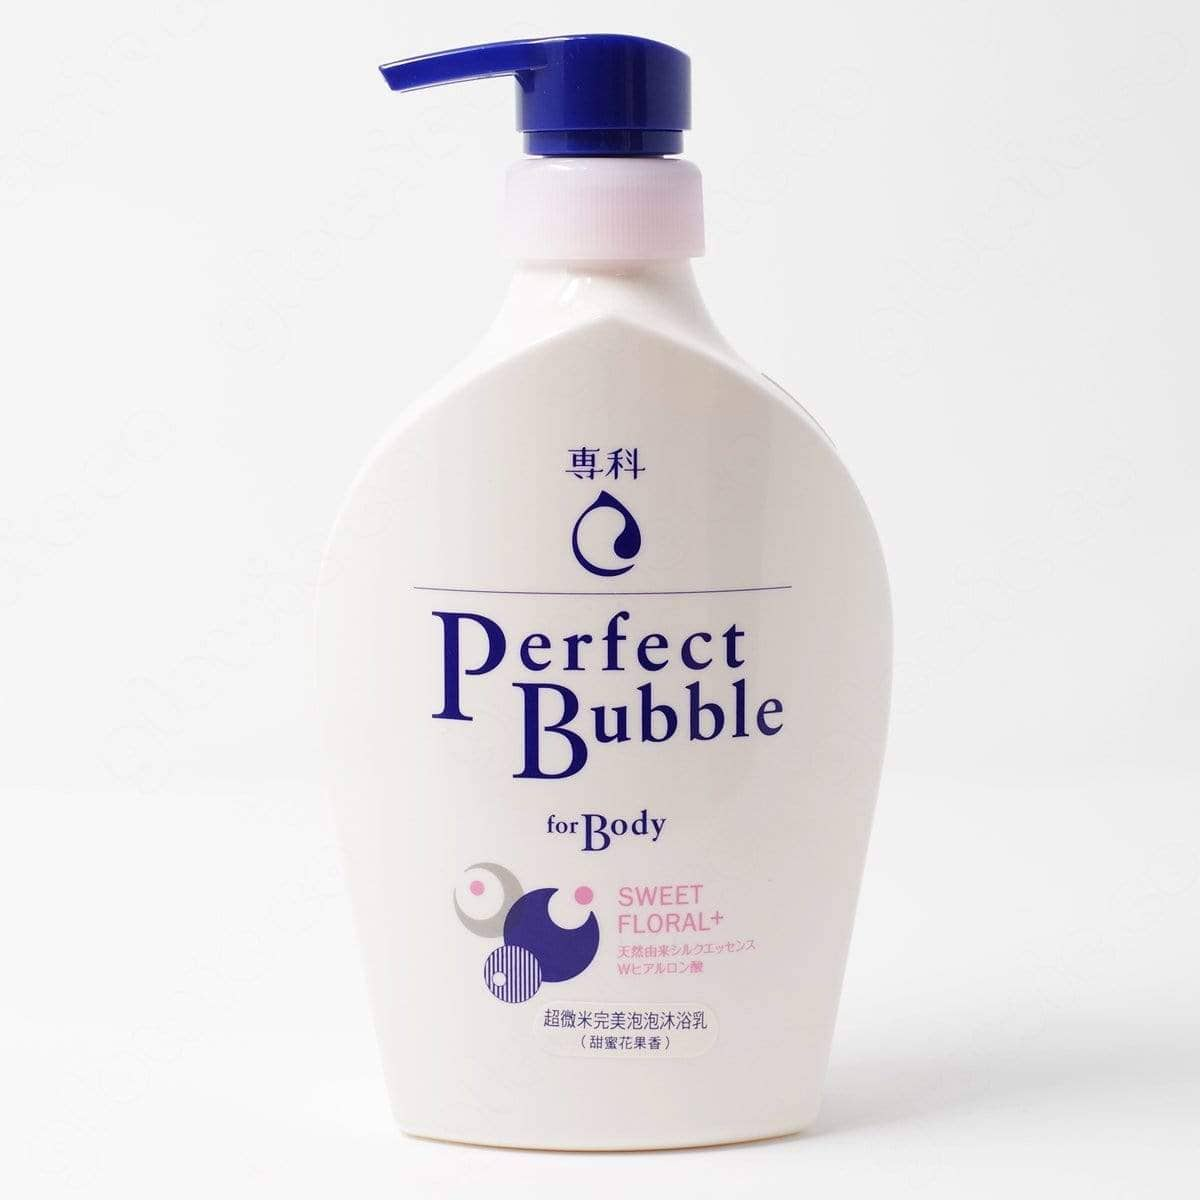 Senka Perfect Bubble Sweet Floral Body Cleanser